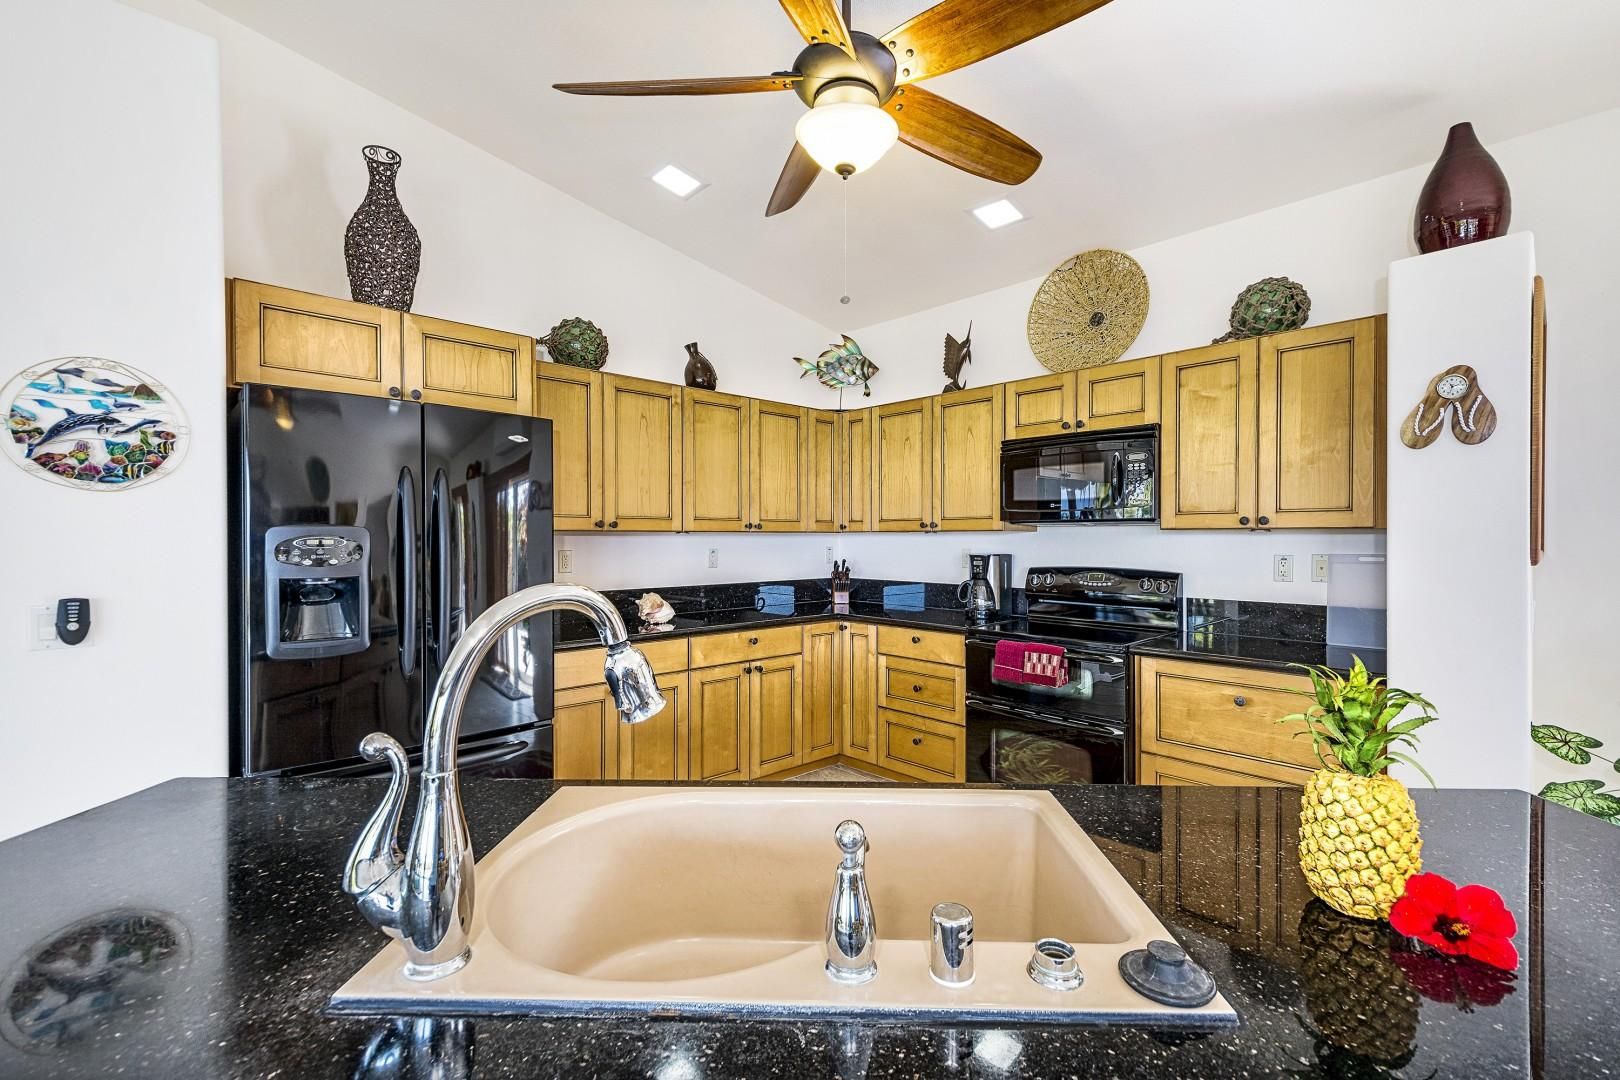 Spacious kitchen, perfect for meal preparation